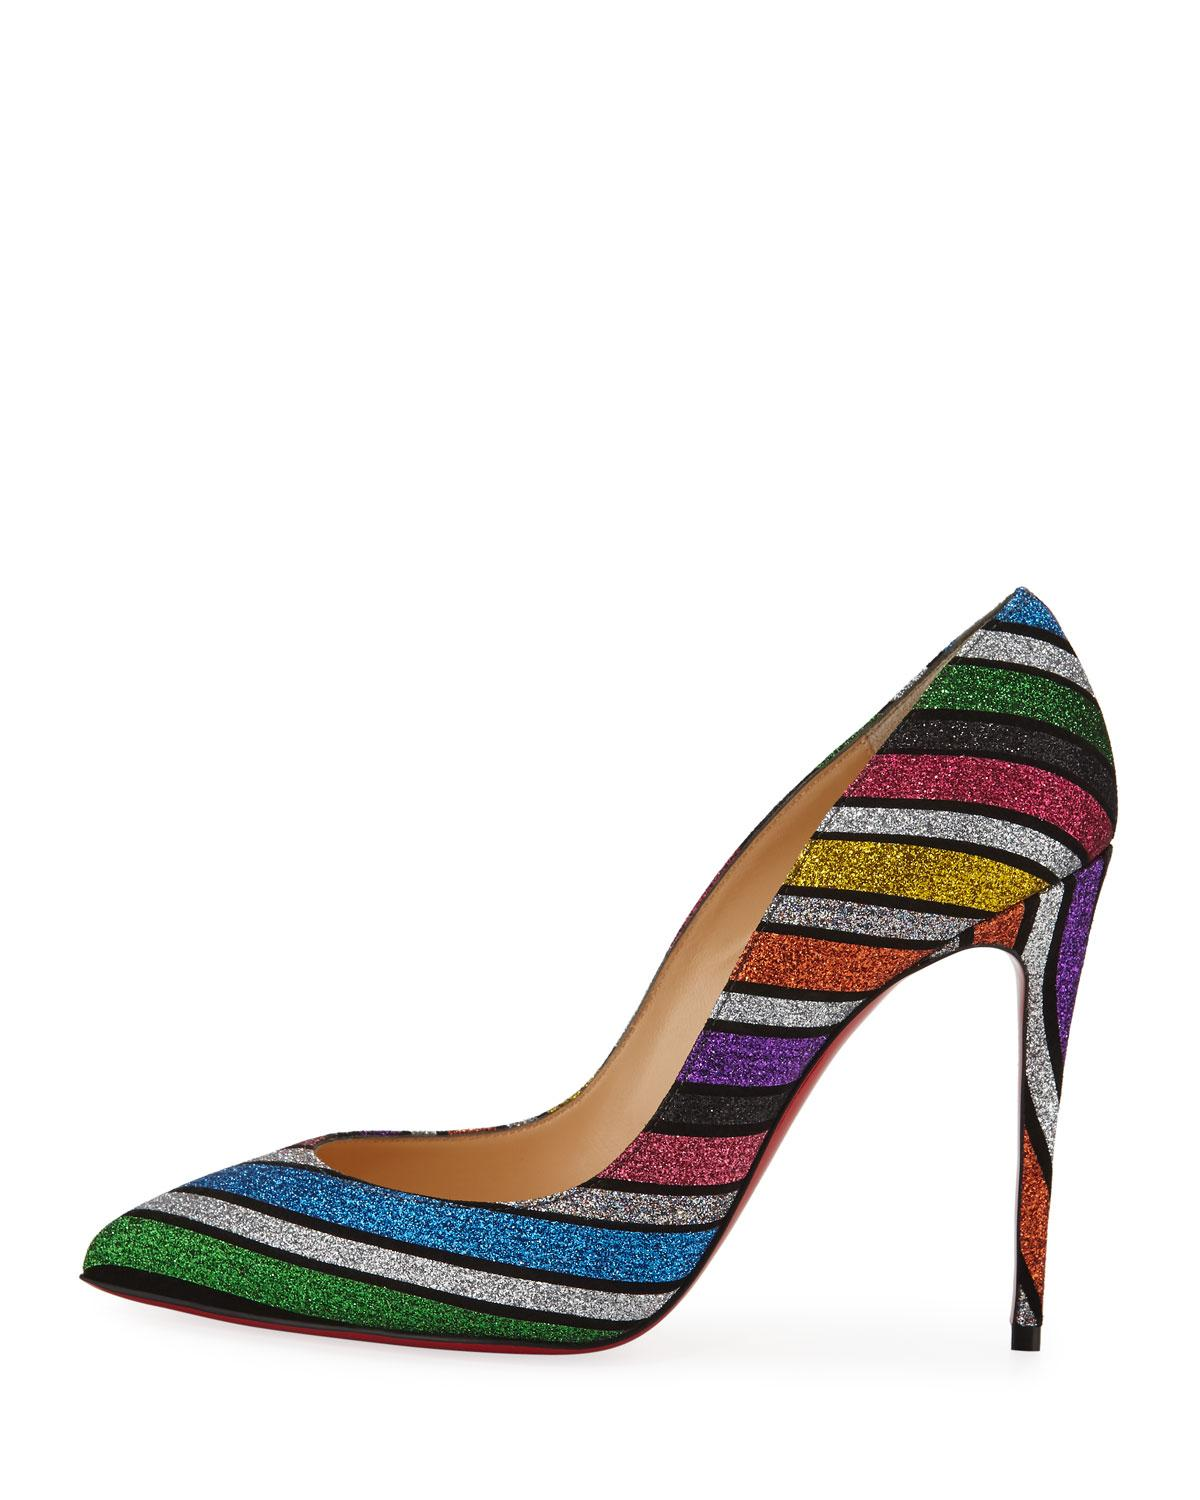 1c5408a9468 Lyst - Christian Louboutin Pigalle Follies Striped Red Sole Pumps in Blue